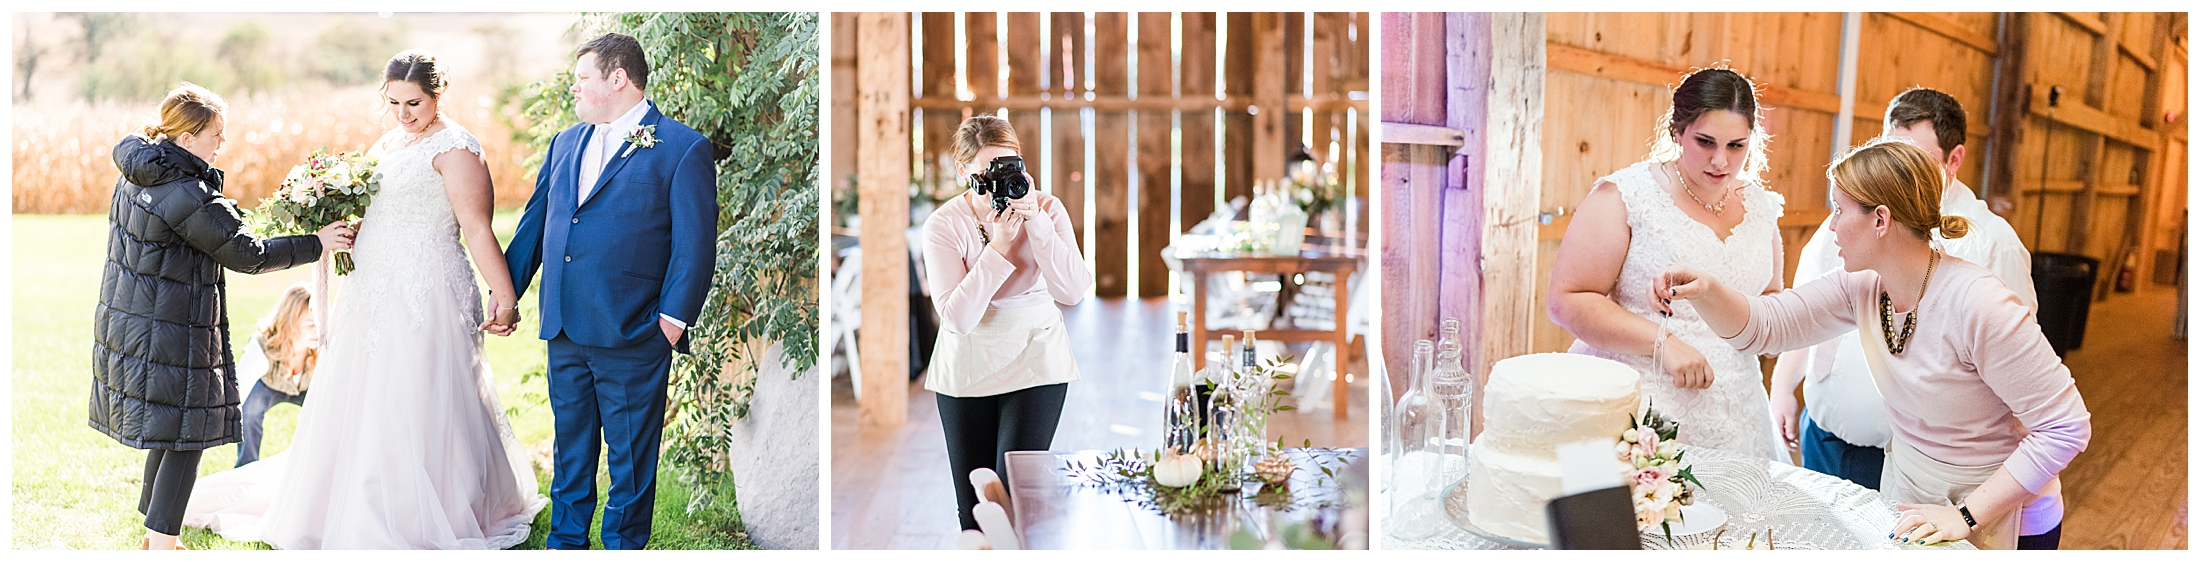 when-to-feed-your-wedding-photographer-8.jpg